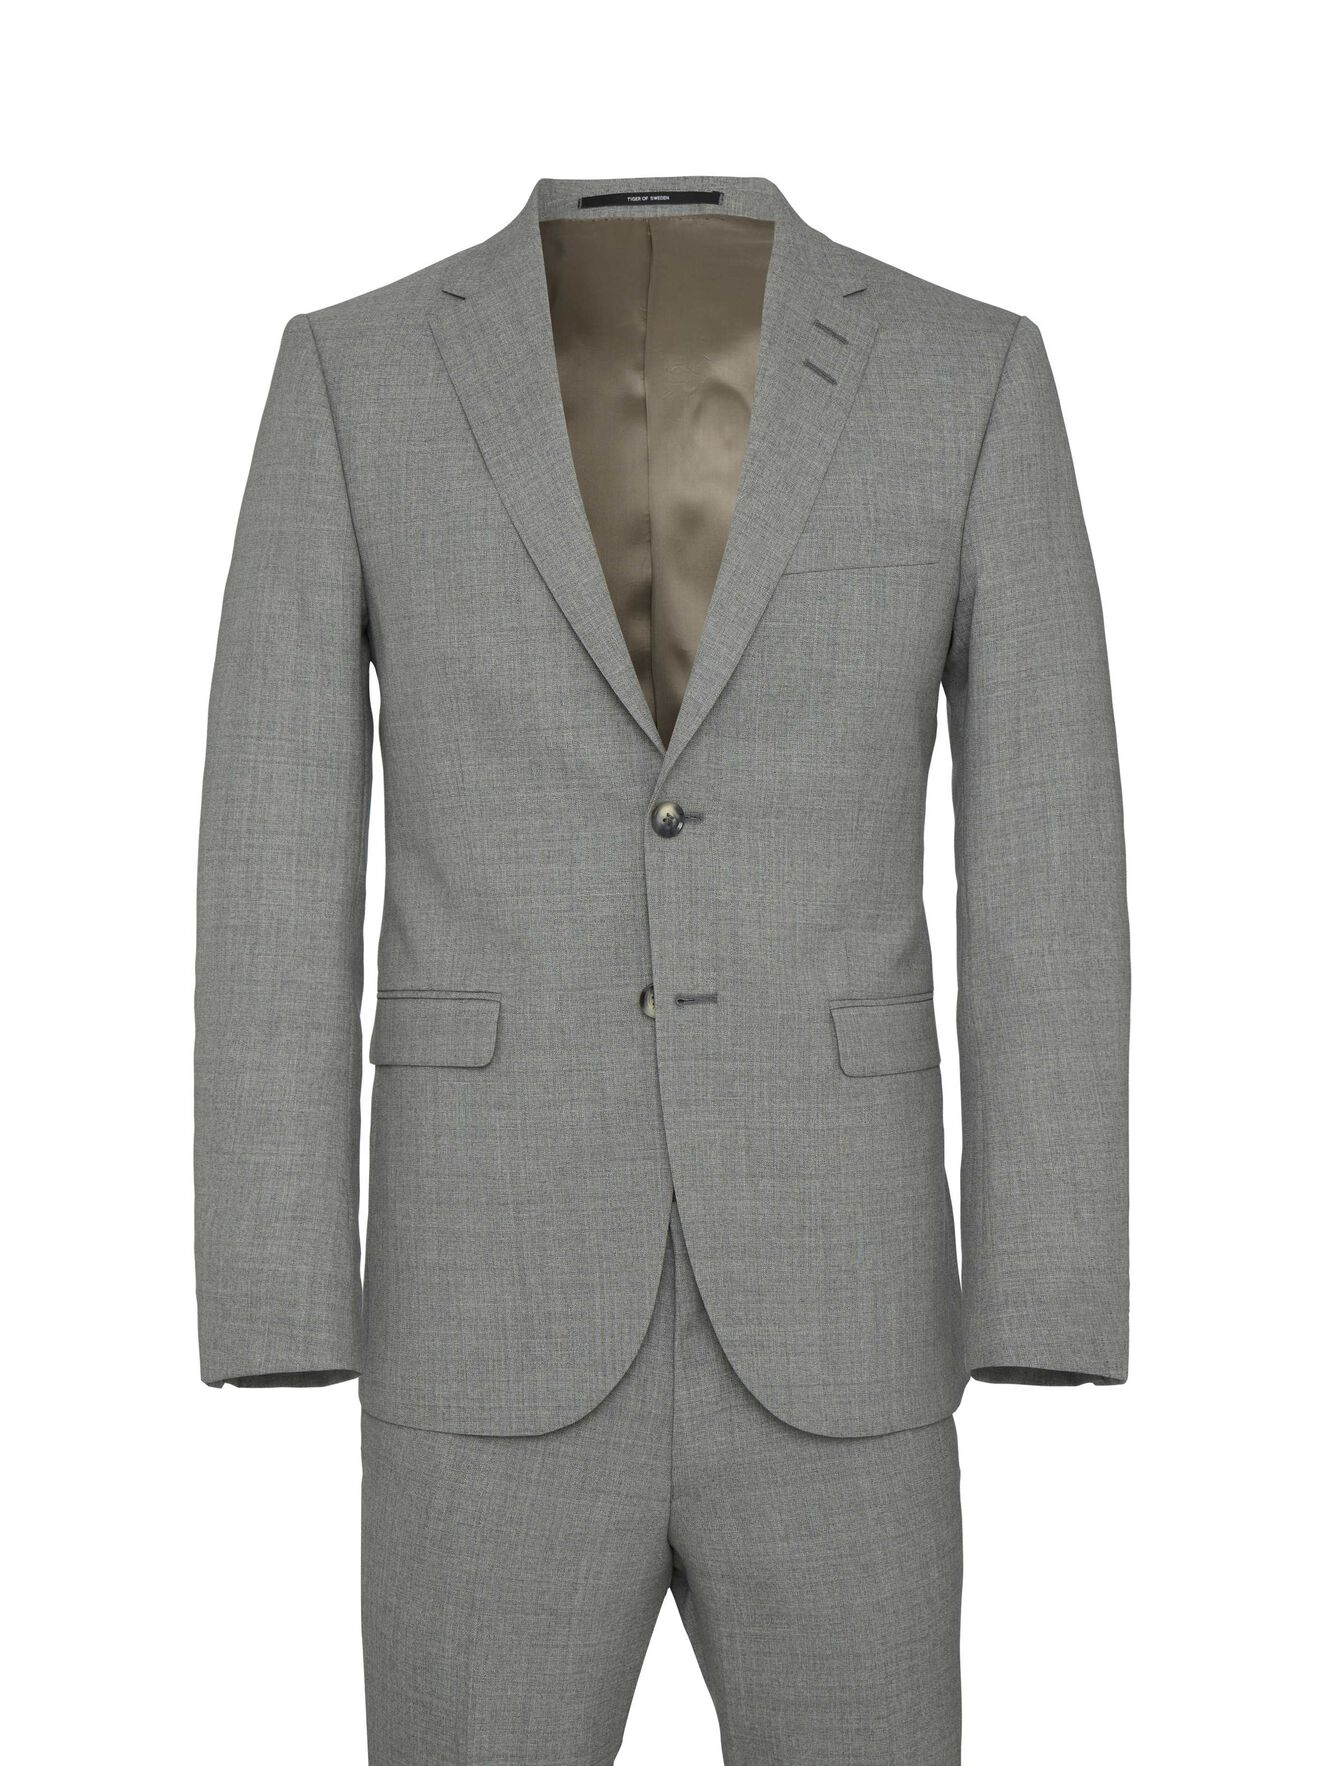 Henrie Suit in Light Grey from Tiger of Sweden